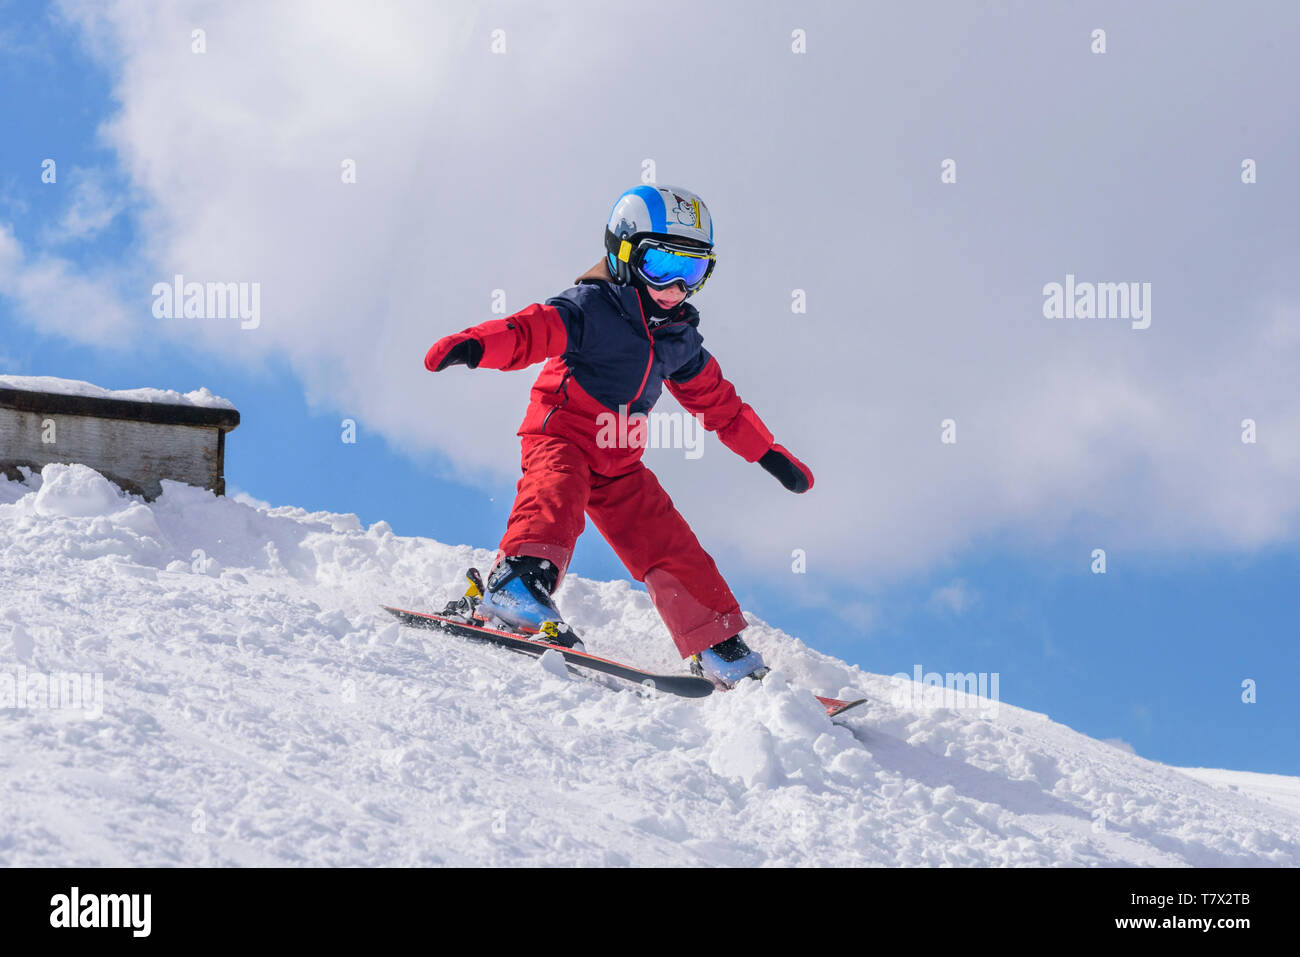 Cute little boy skiing on slope Stock Photo